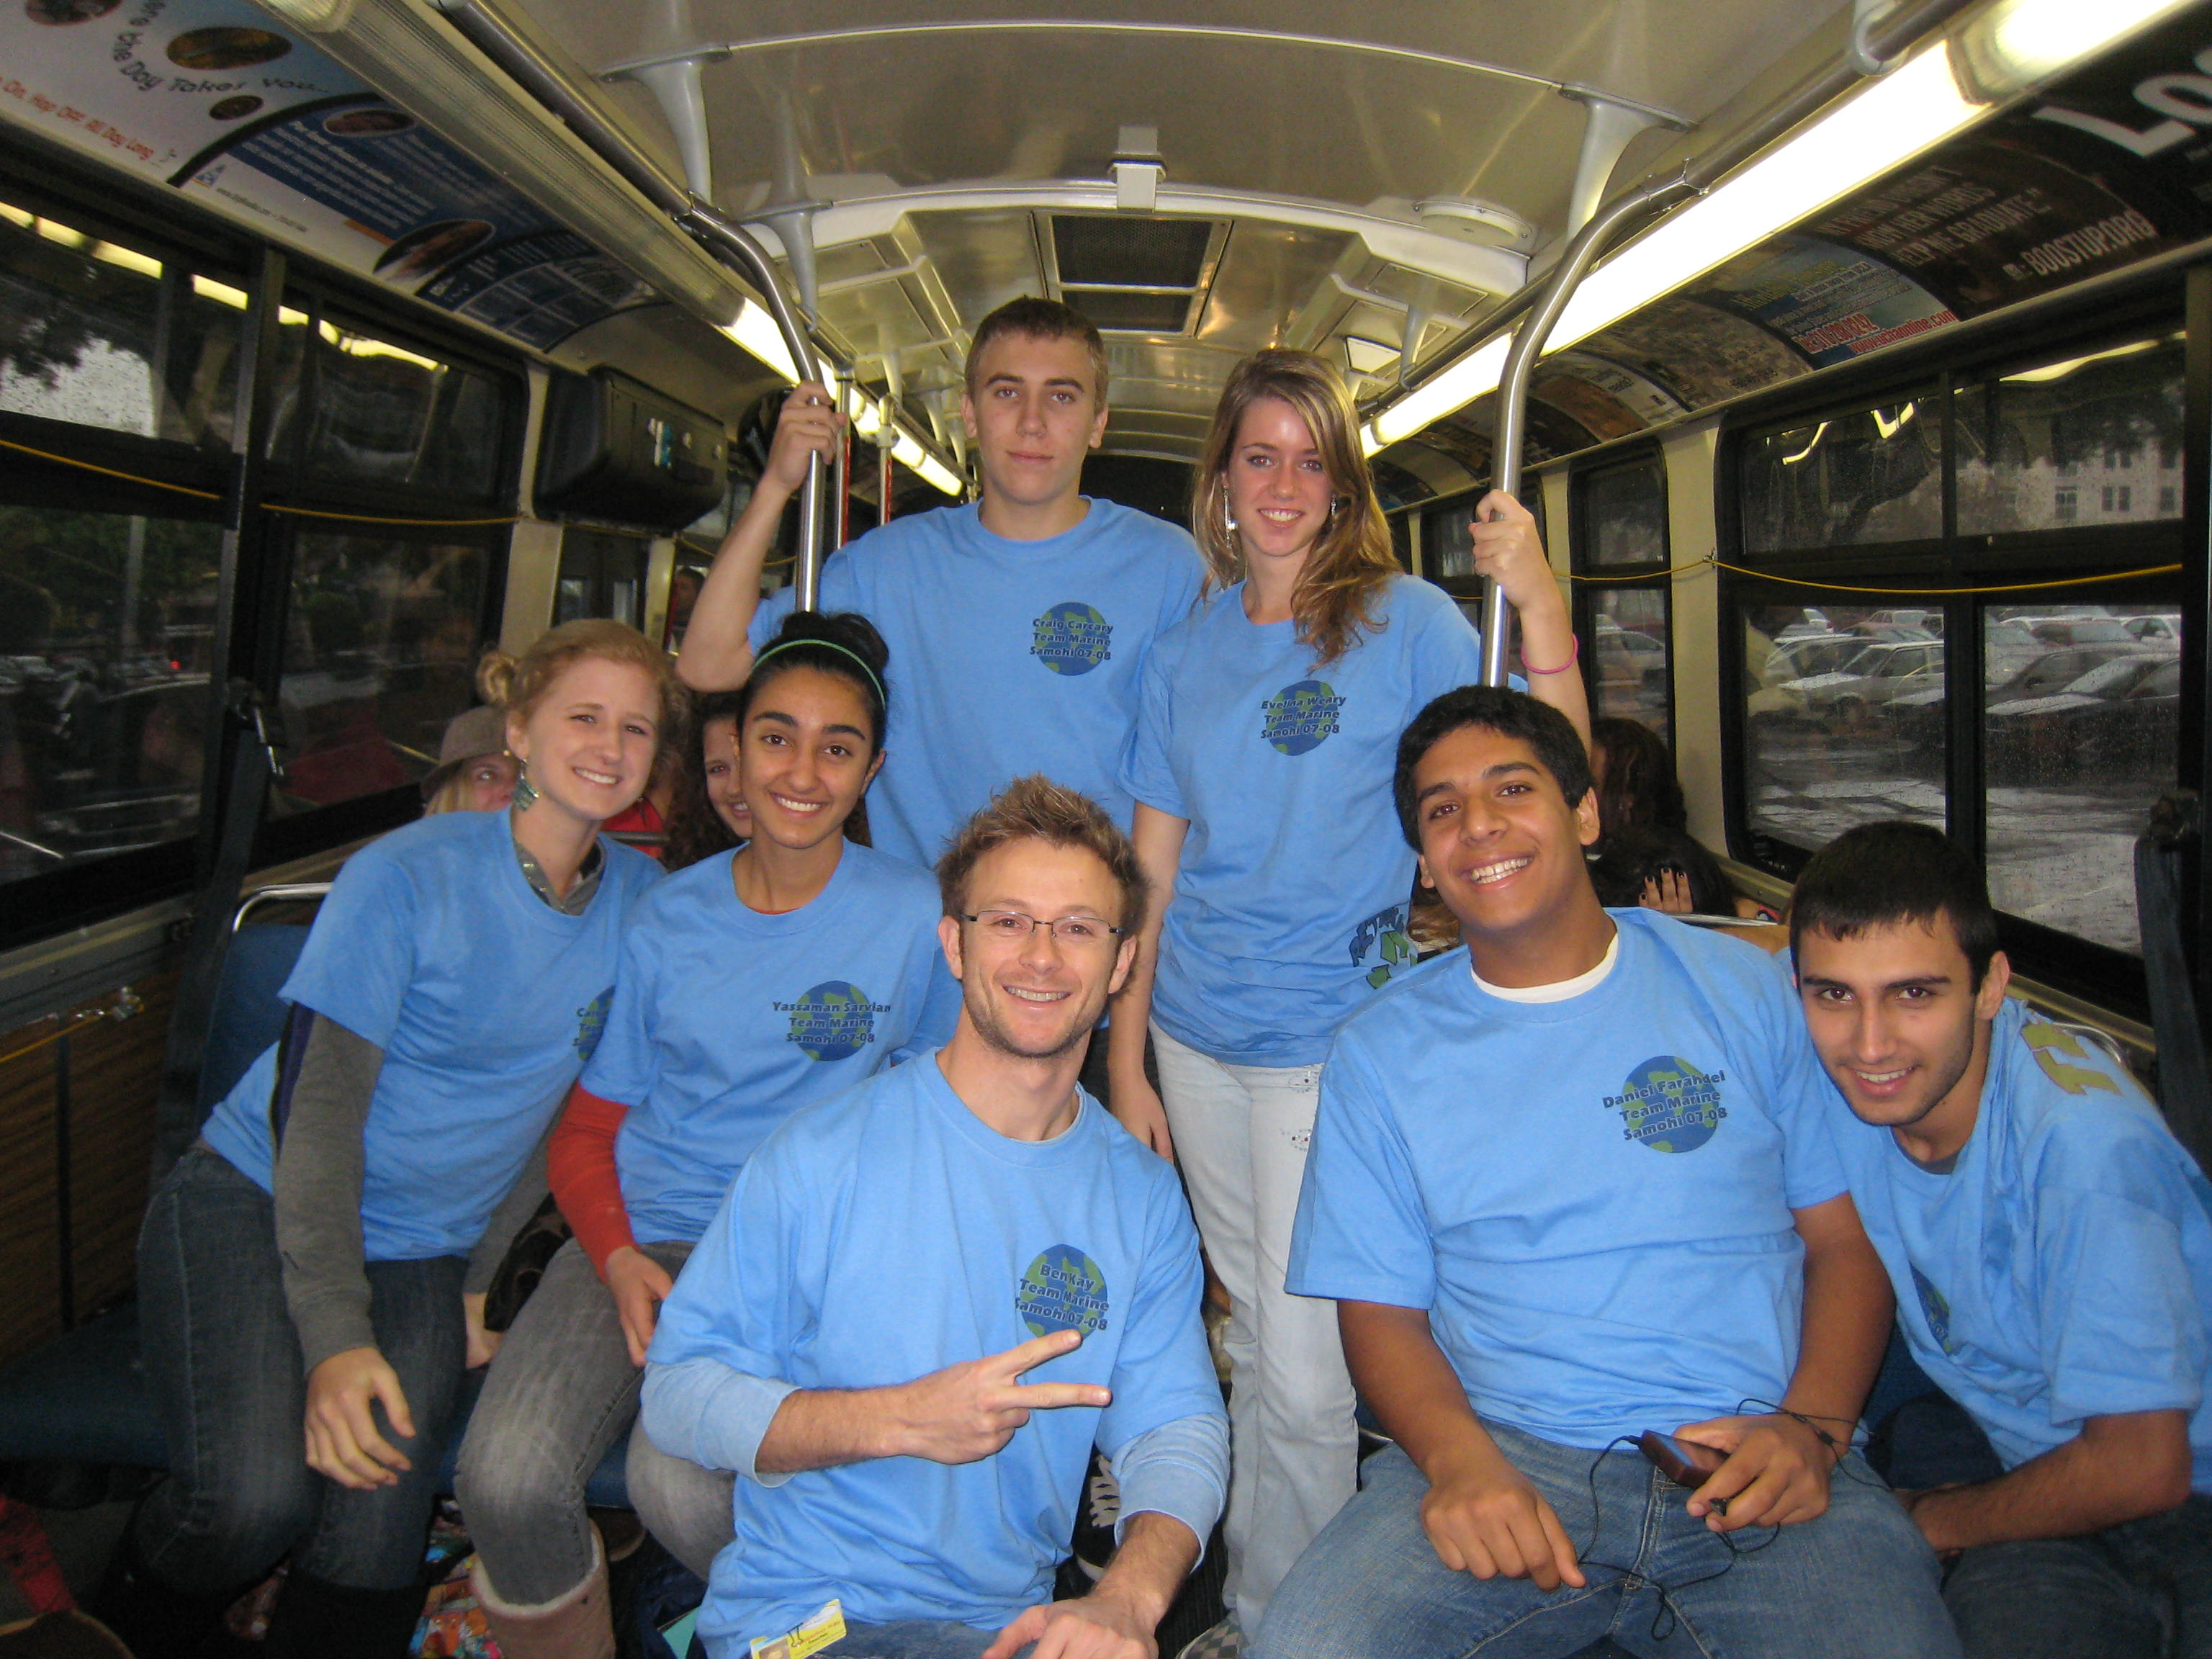 Team Marine from left to right: Caroline Knab, Yassaman Sarvian, Craig Carcary, Benjamin Kay (marine biology teacher, coach of Team Marine and Heal the Bay Club advisor at Samohi), Evelina Weary, Daniel Farahdel, and Daniel Hakhamzadeh